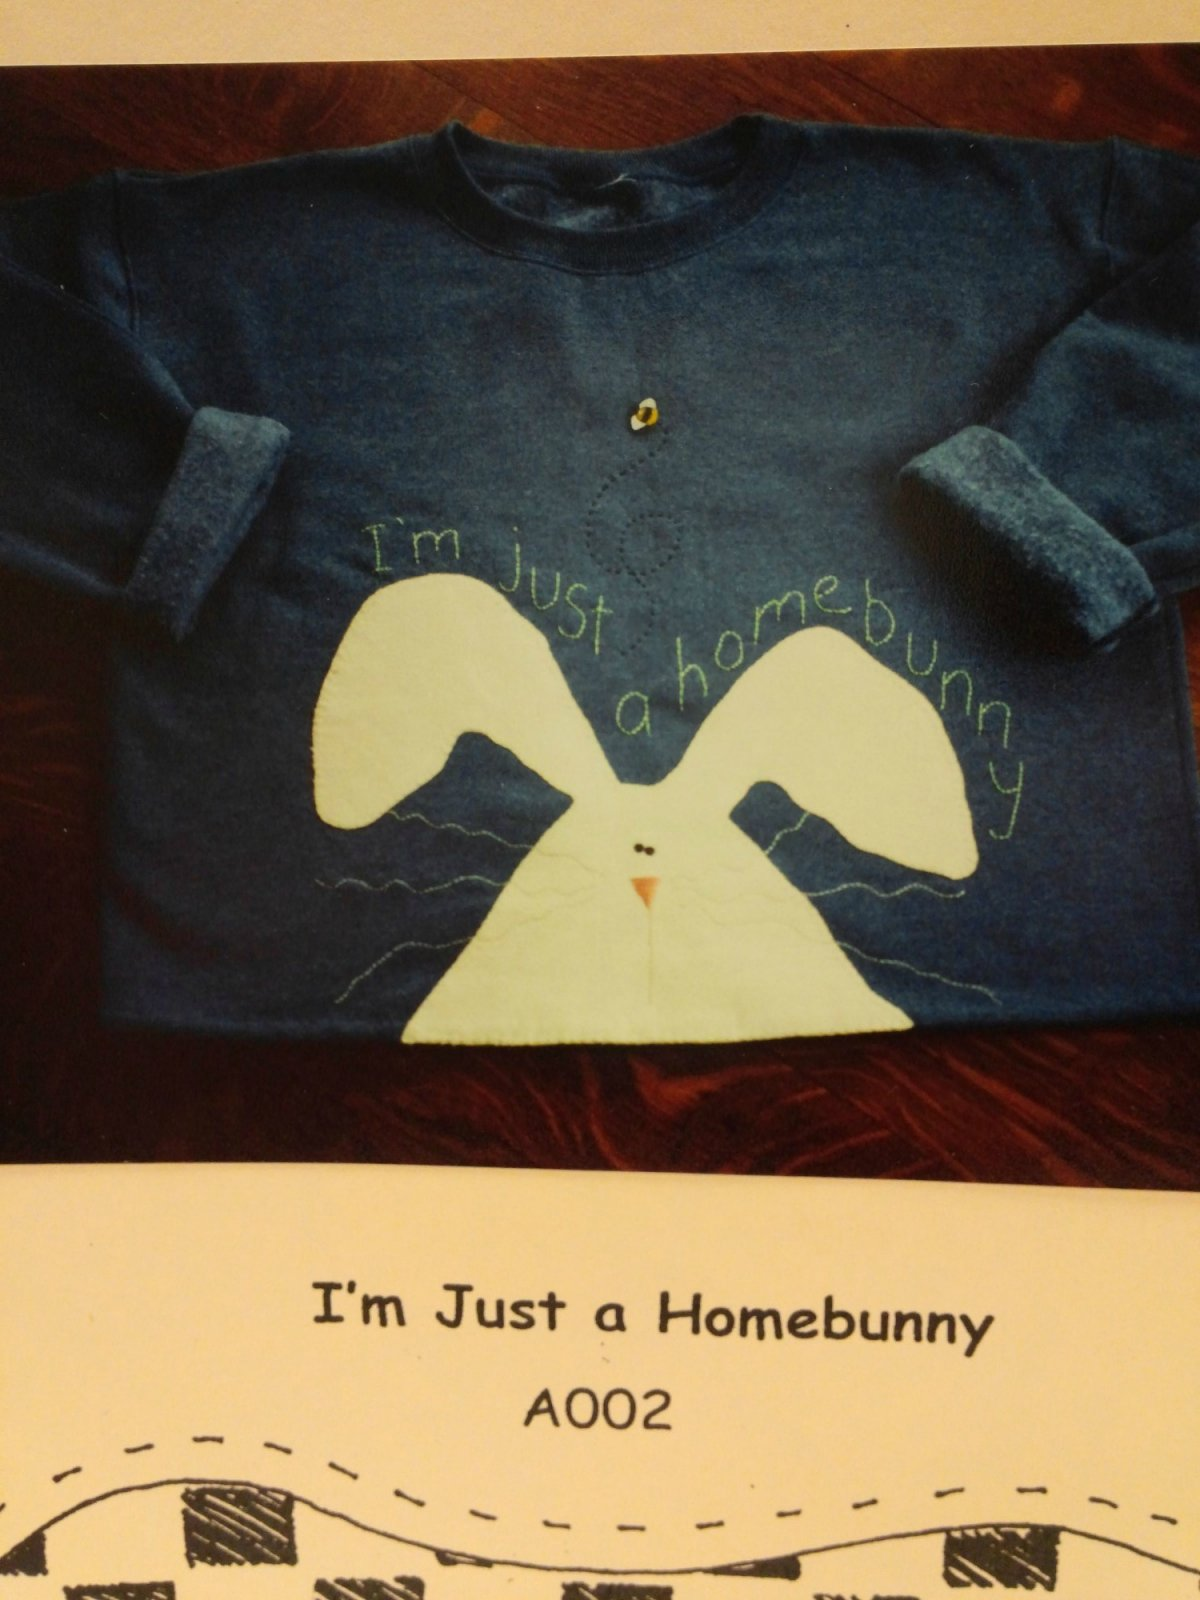 I'm Just a Homebunny